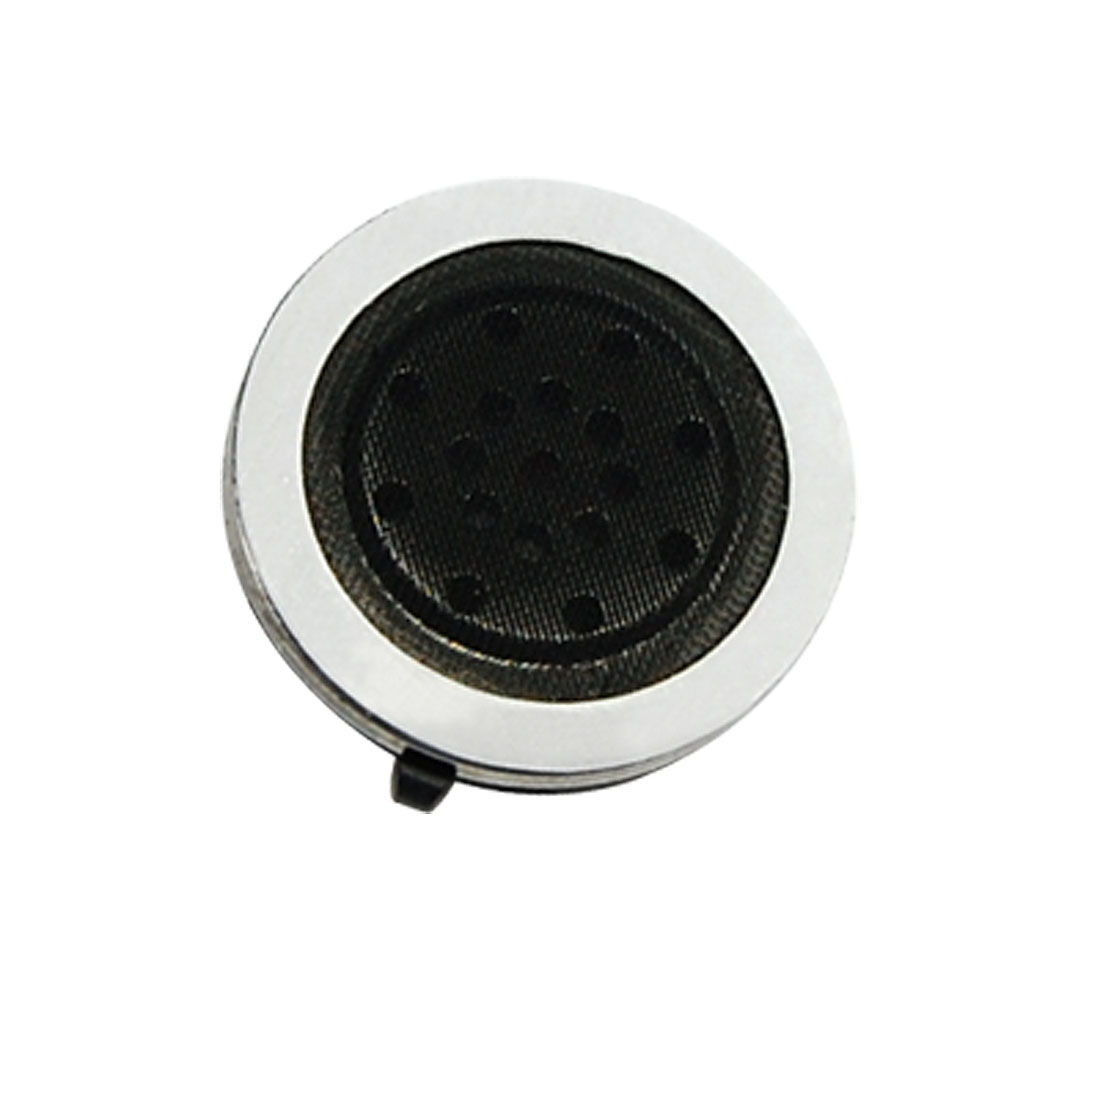 Repair Part Buzzer Ringer Loud Speaker for Nokia 7210